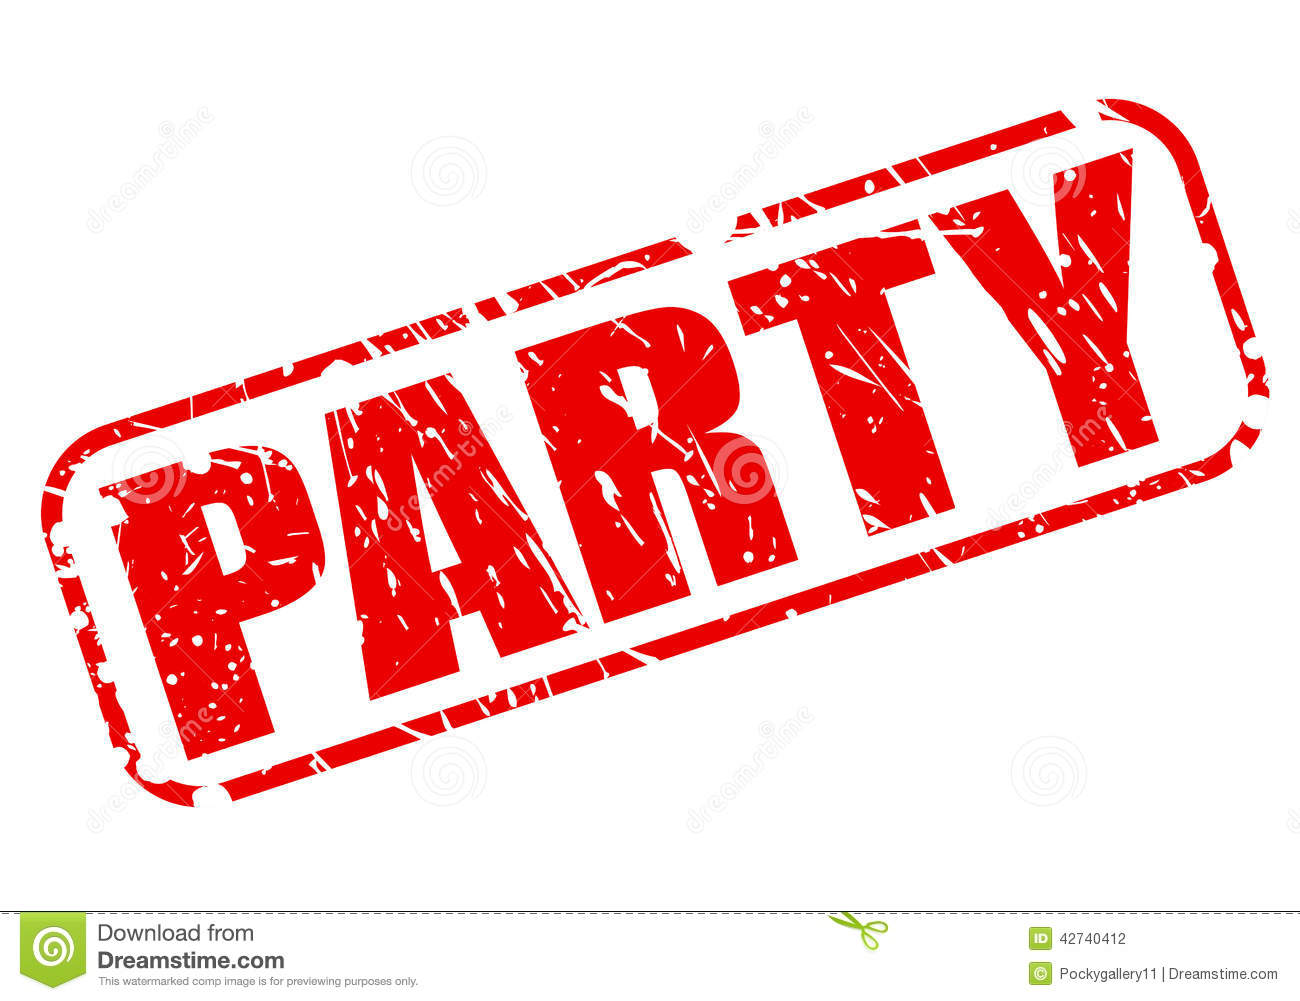 party-red-stamp-text-white-42740412.jpg